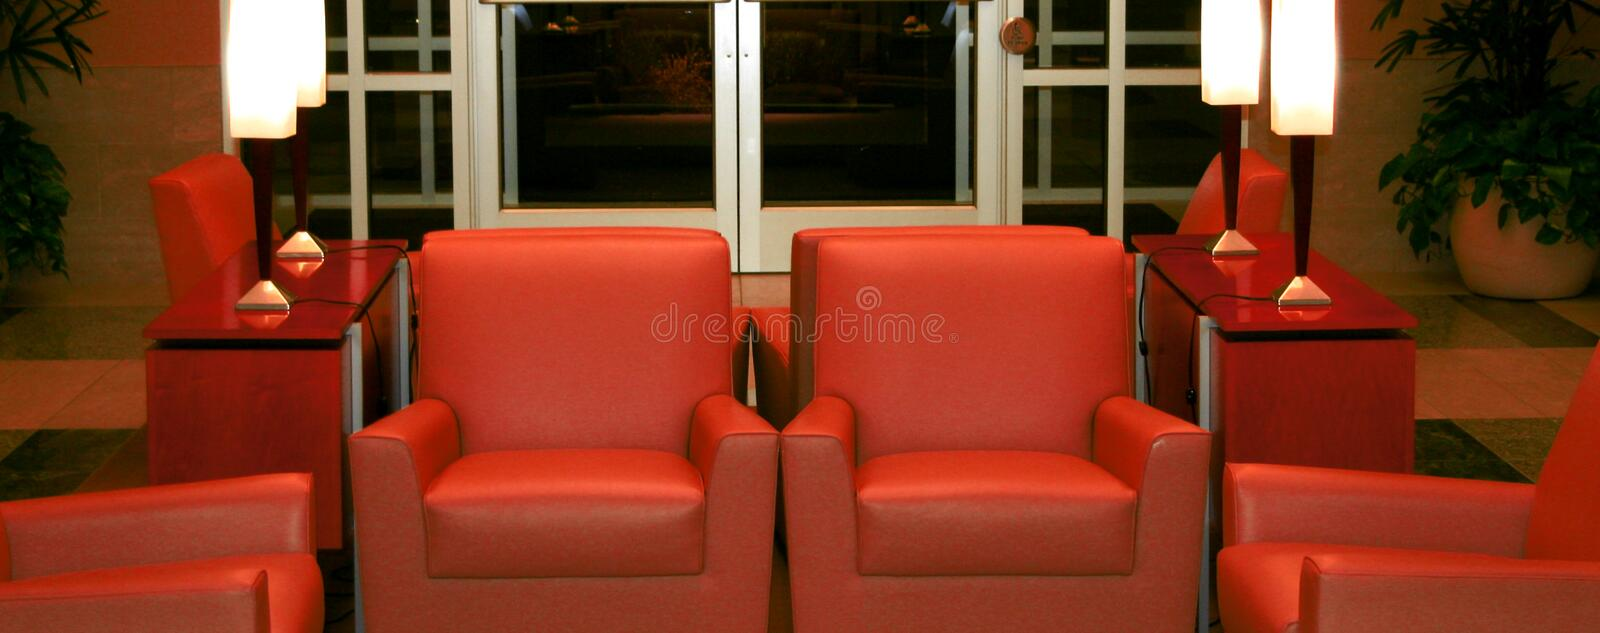 Download The waiting room stock image. Image of designer, chair, interior - 10521